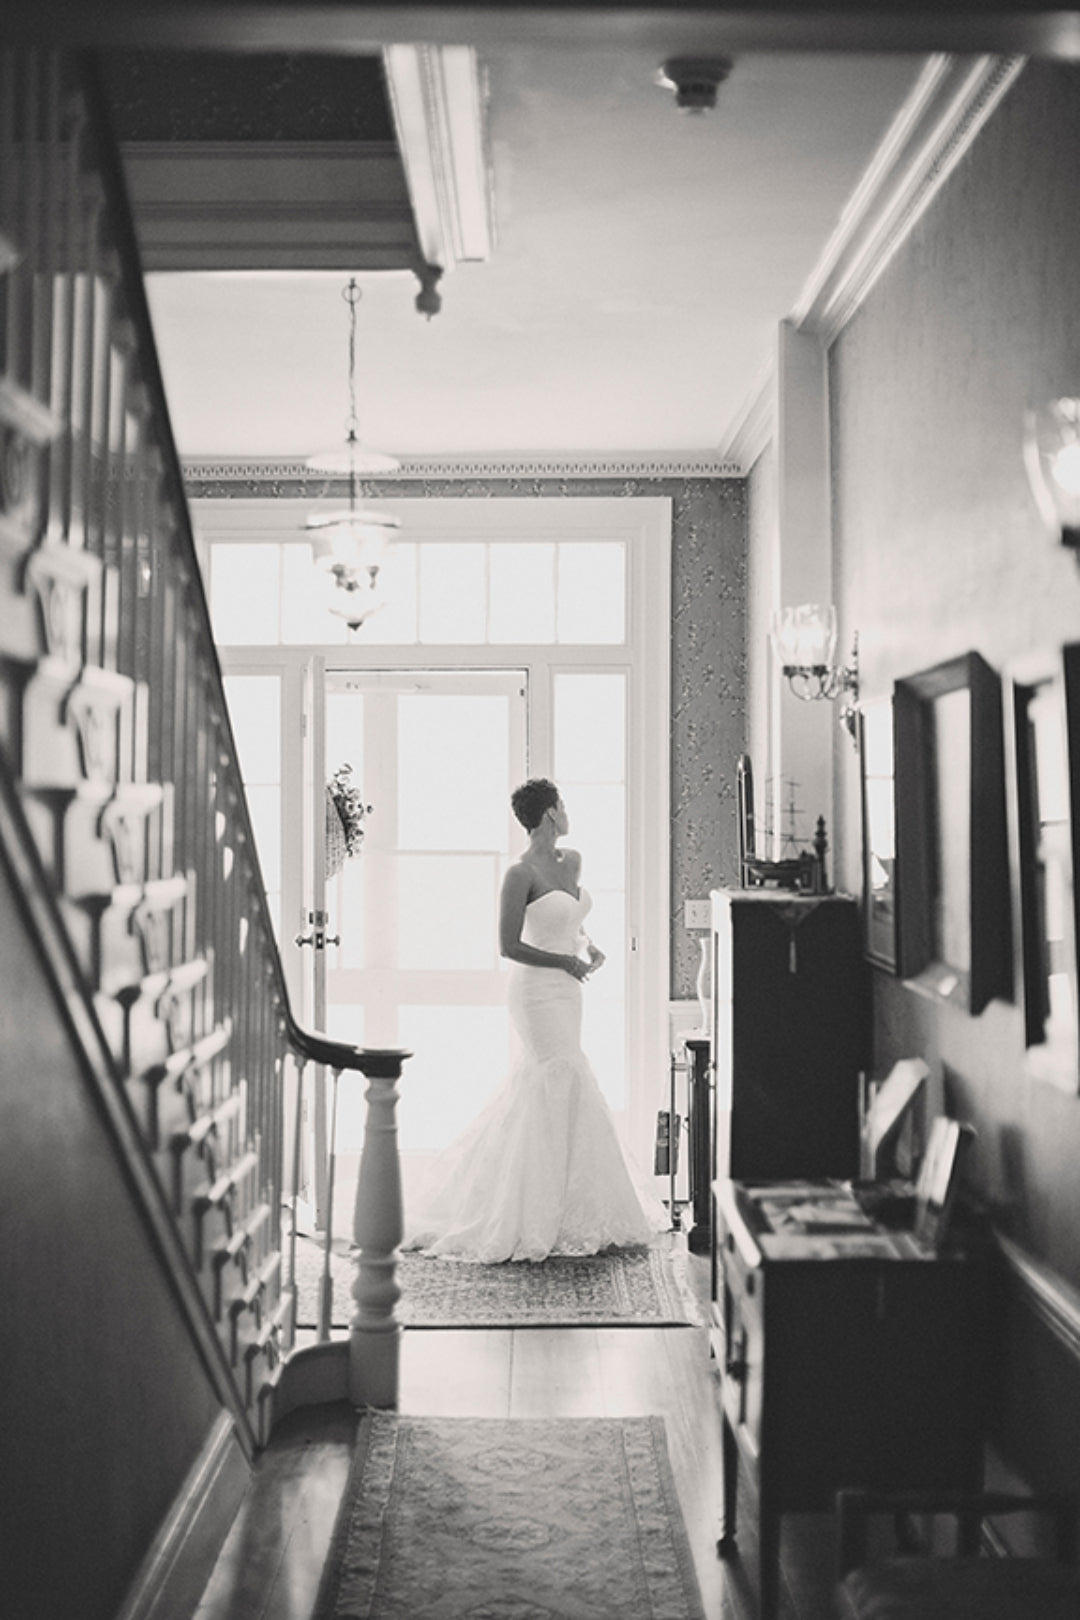 Black and white image of a bride in a hallway